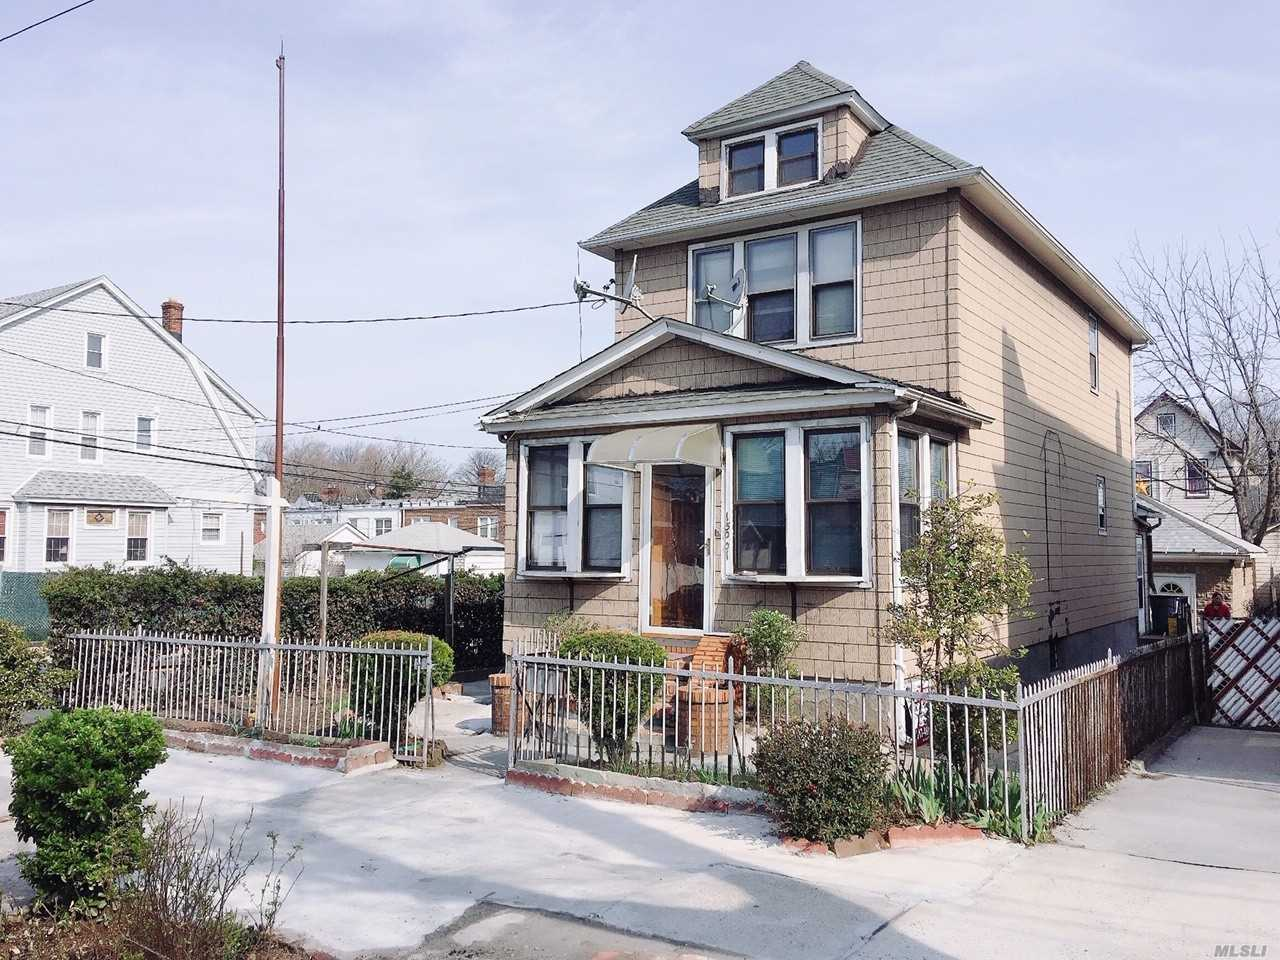 This House is on the Border of Briarwood & Jamaica Hills. Features Living Room, Formal Dining Room, 3 Bedrooms, 2 Full Baths, Kitchen, Full Finished Basement with Sep Entrance. Close to Grand Central Pkwy & Transportation.